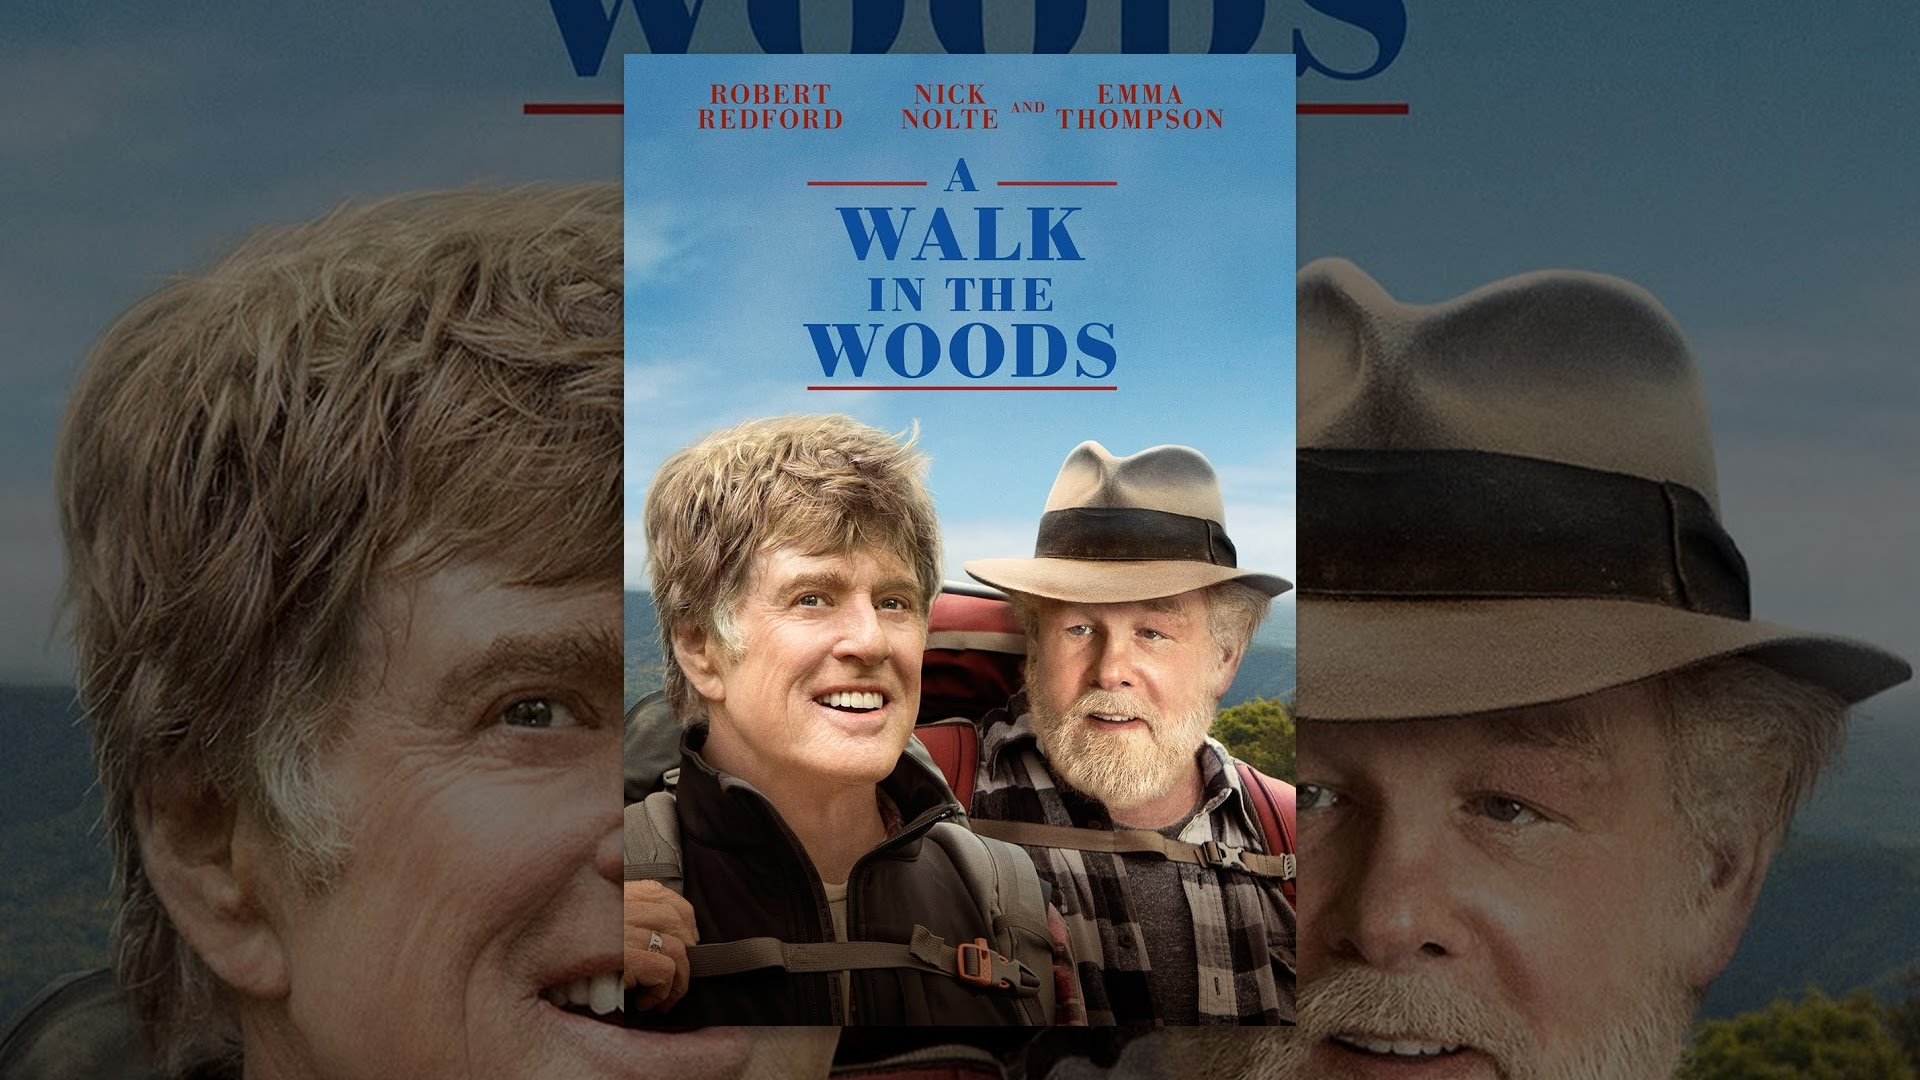 A walk in the woods movie release date in Sydney